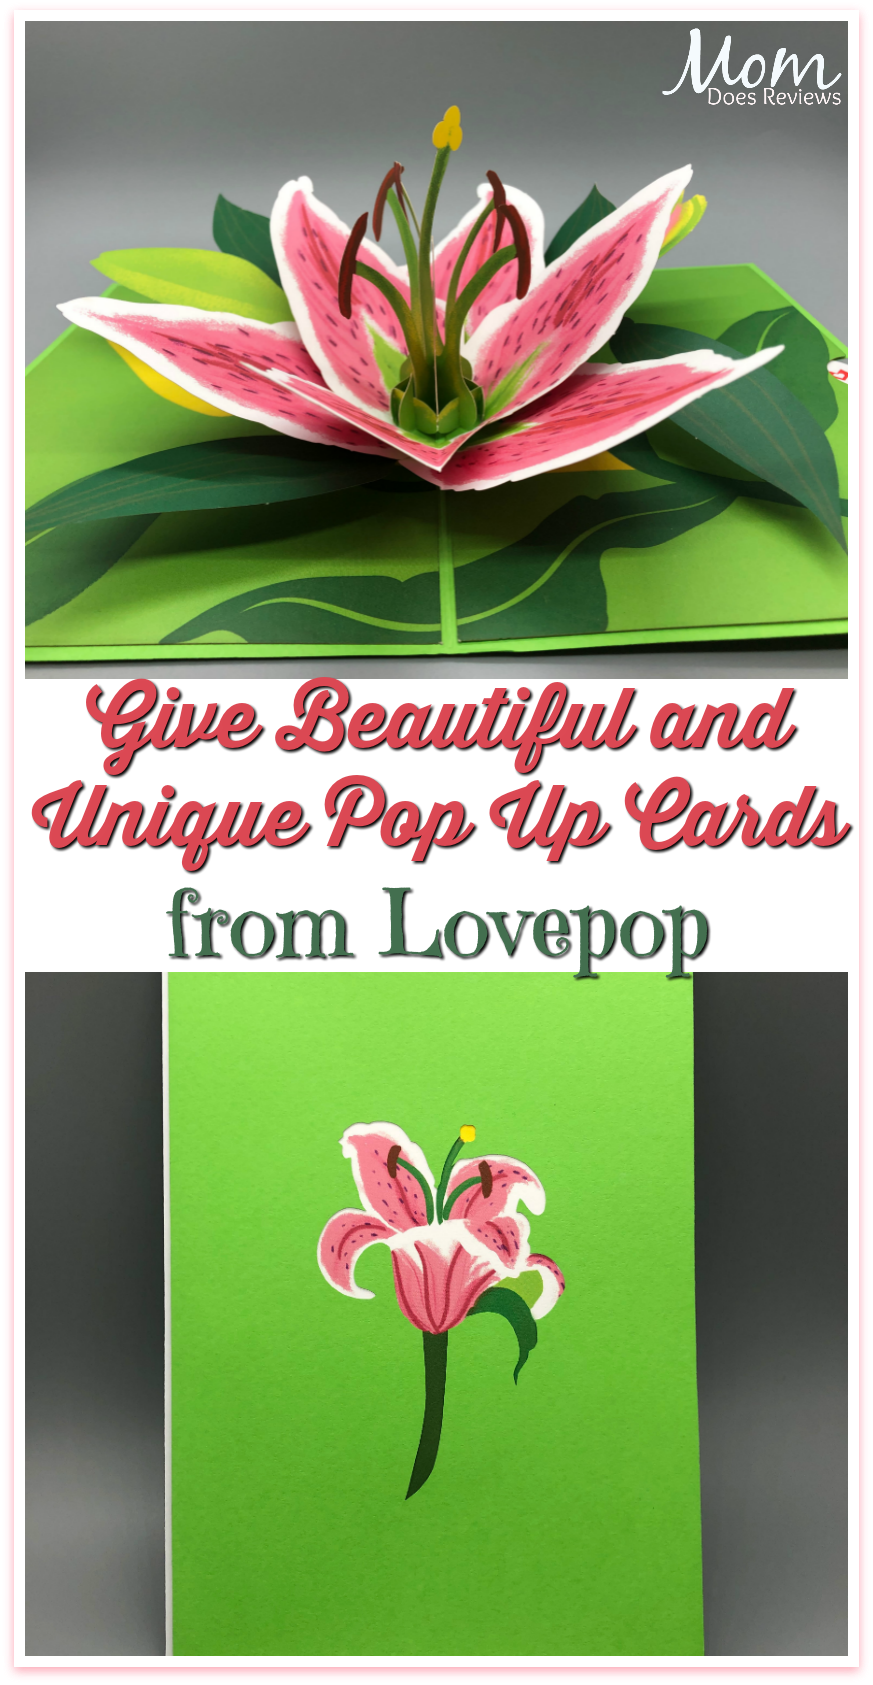 Give Beautiful and Unique Pop Up Cards from Lovepop #Giftsformom19 #cards #popupcards #greetingcards